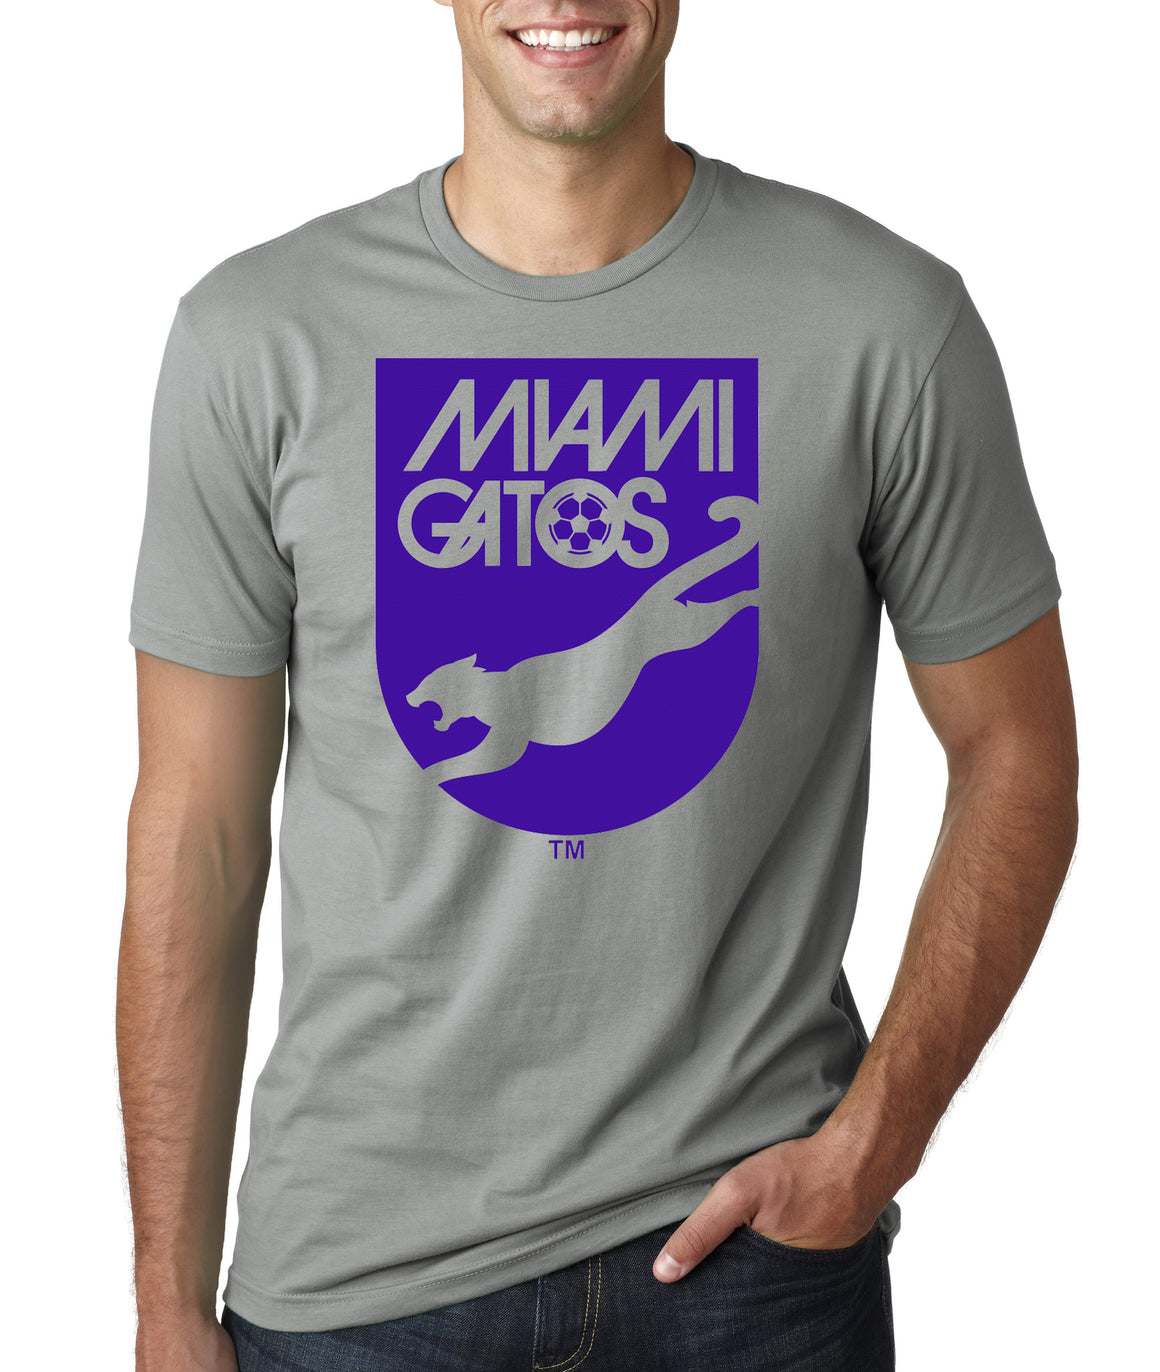 Miami Gatos Tee